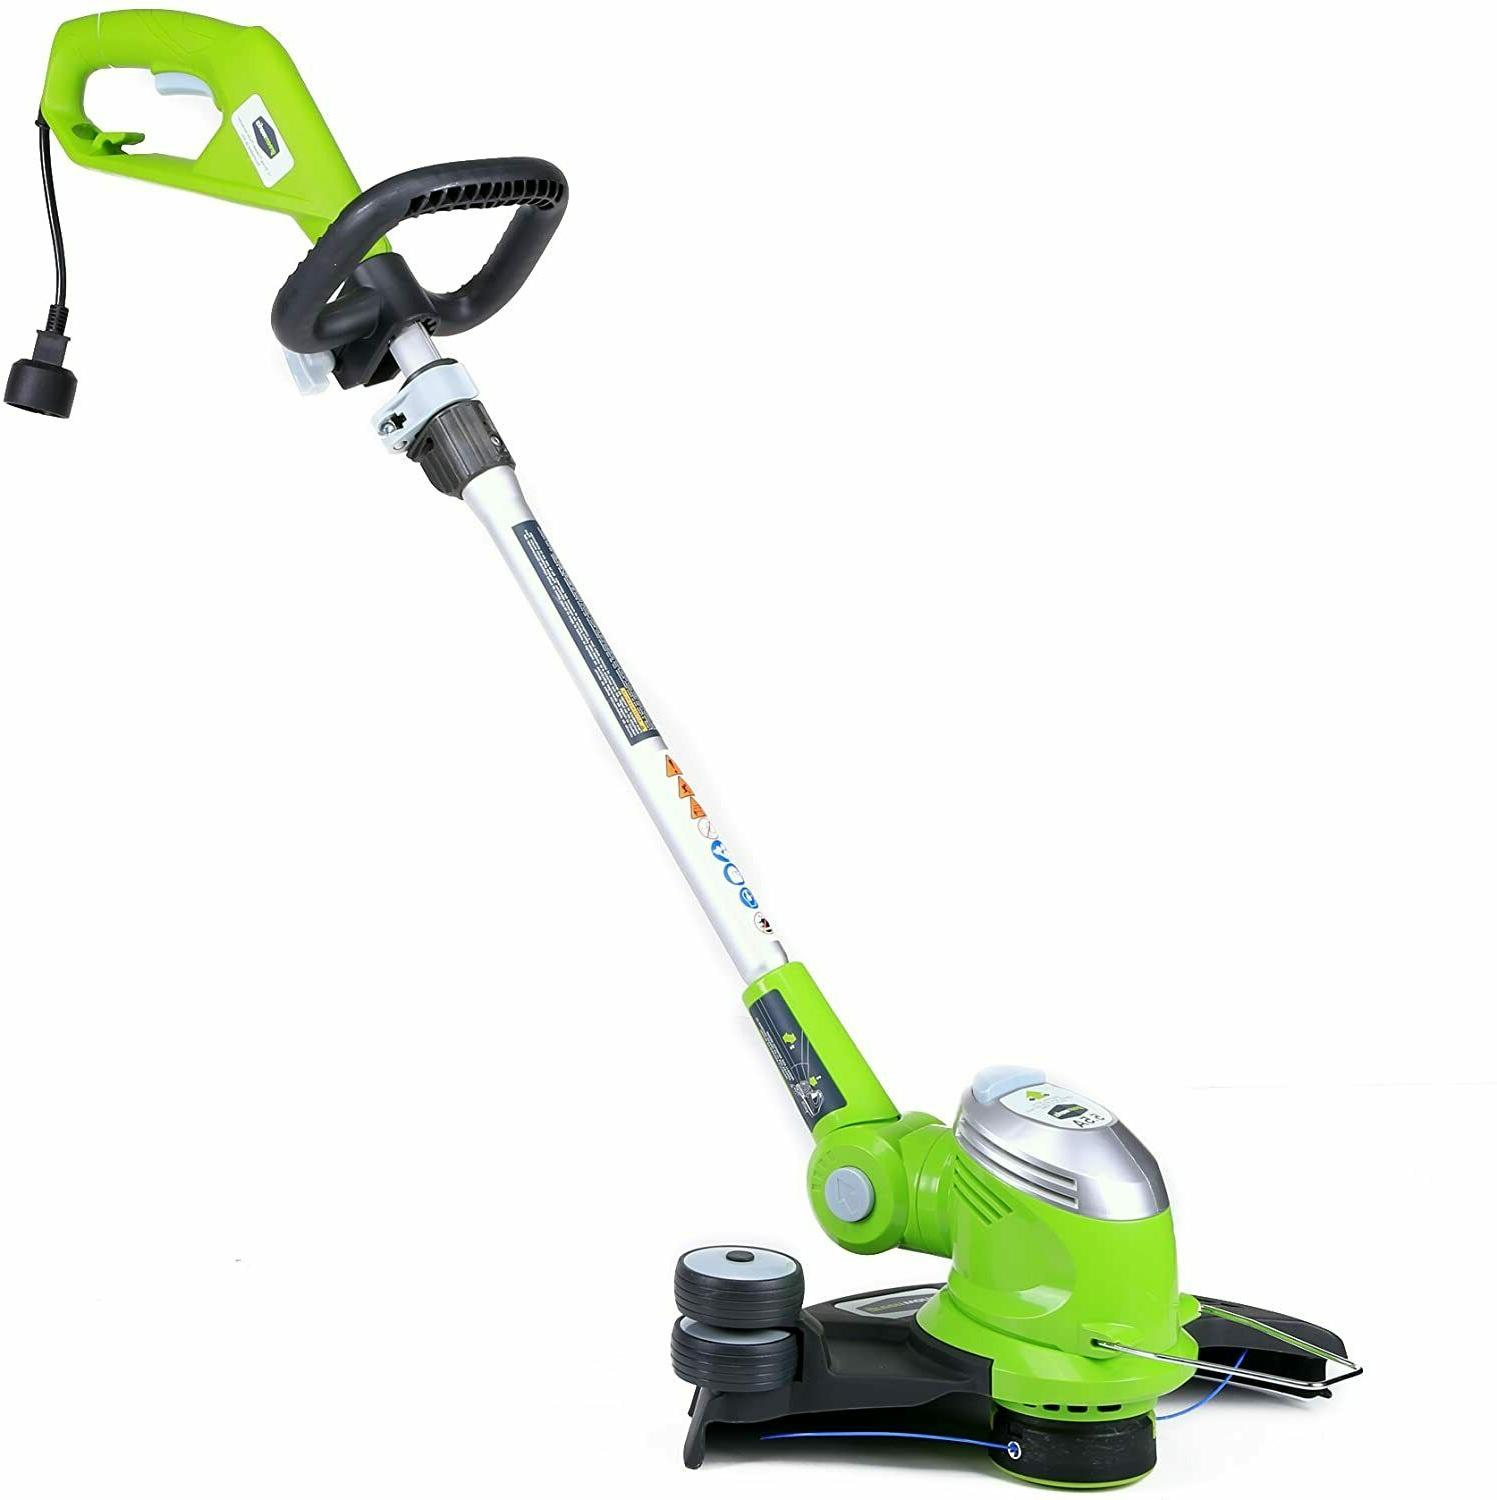 Corded Electric Edger Weed Eater Ne